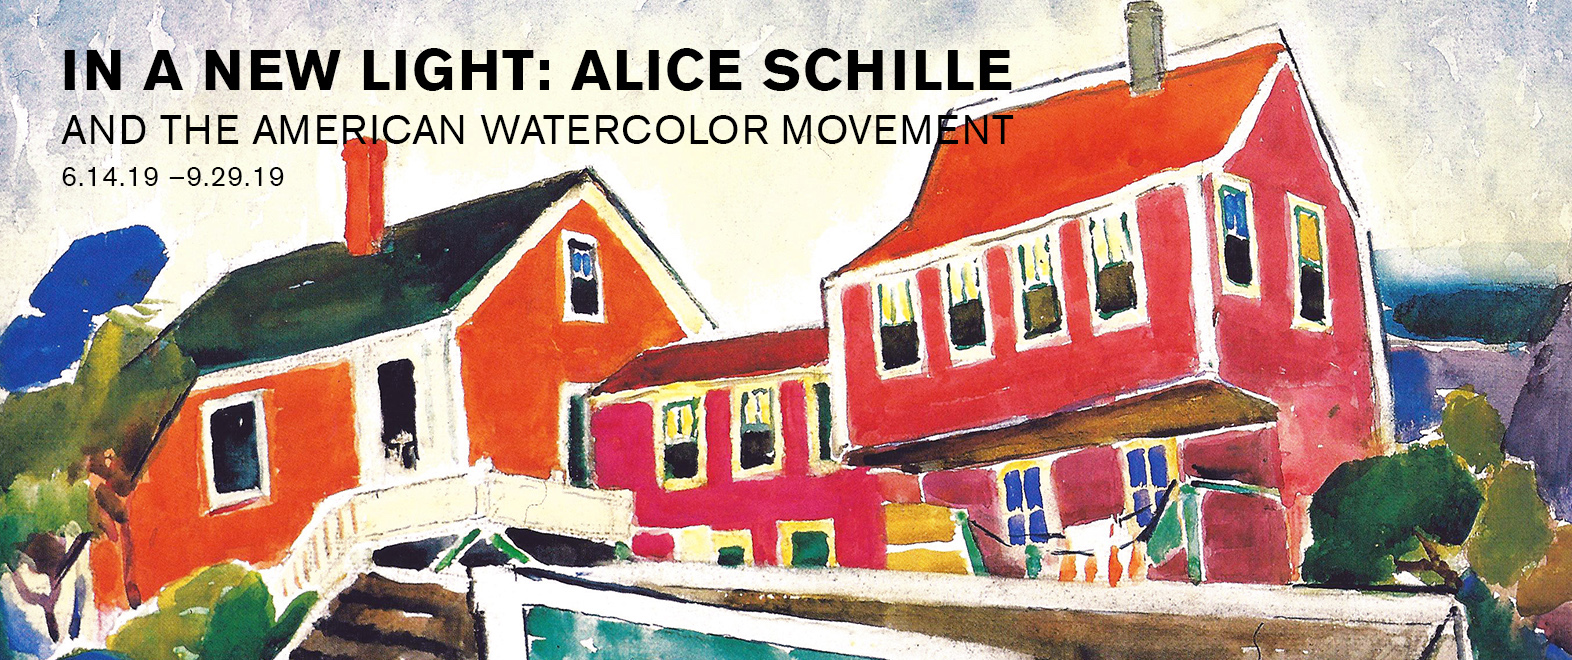 In a New Light: Alice Schille and the American Watercolor Movement